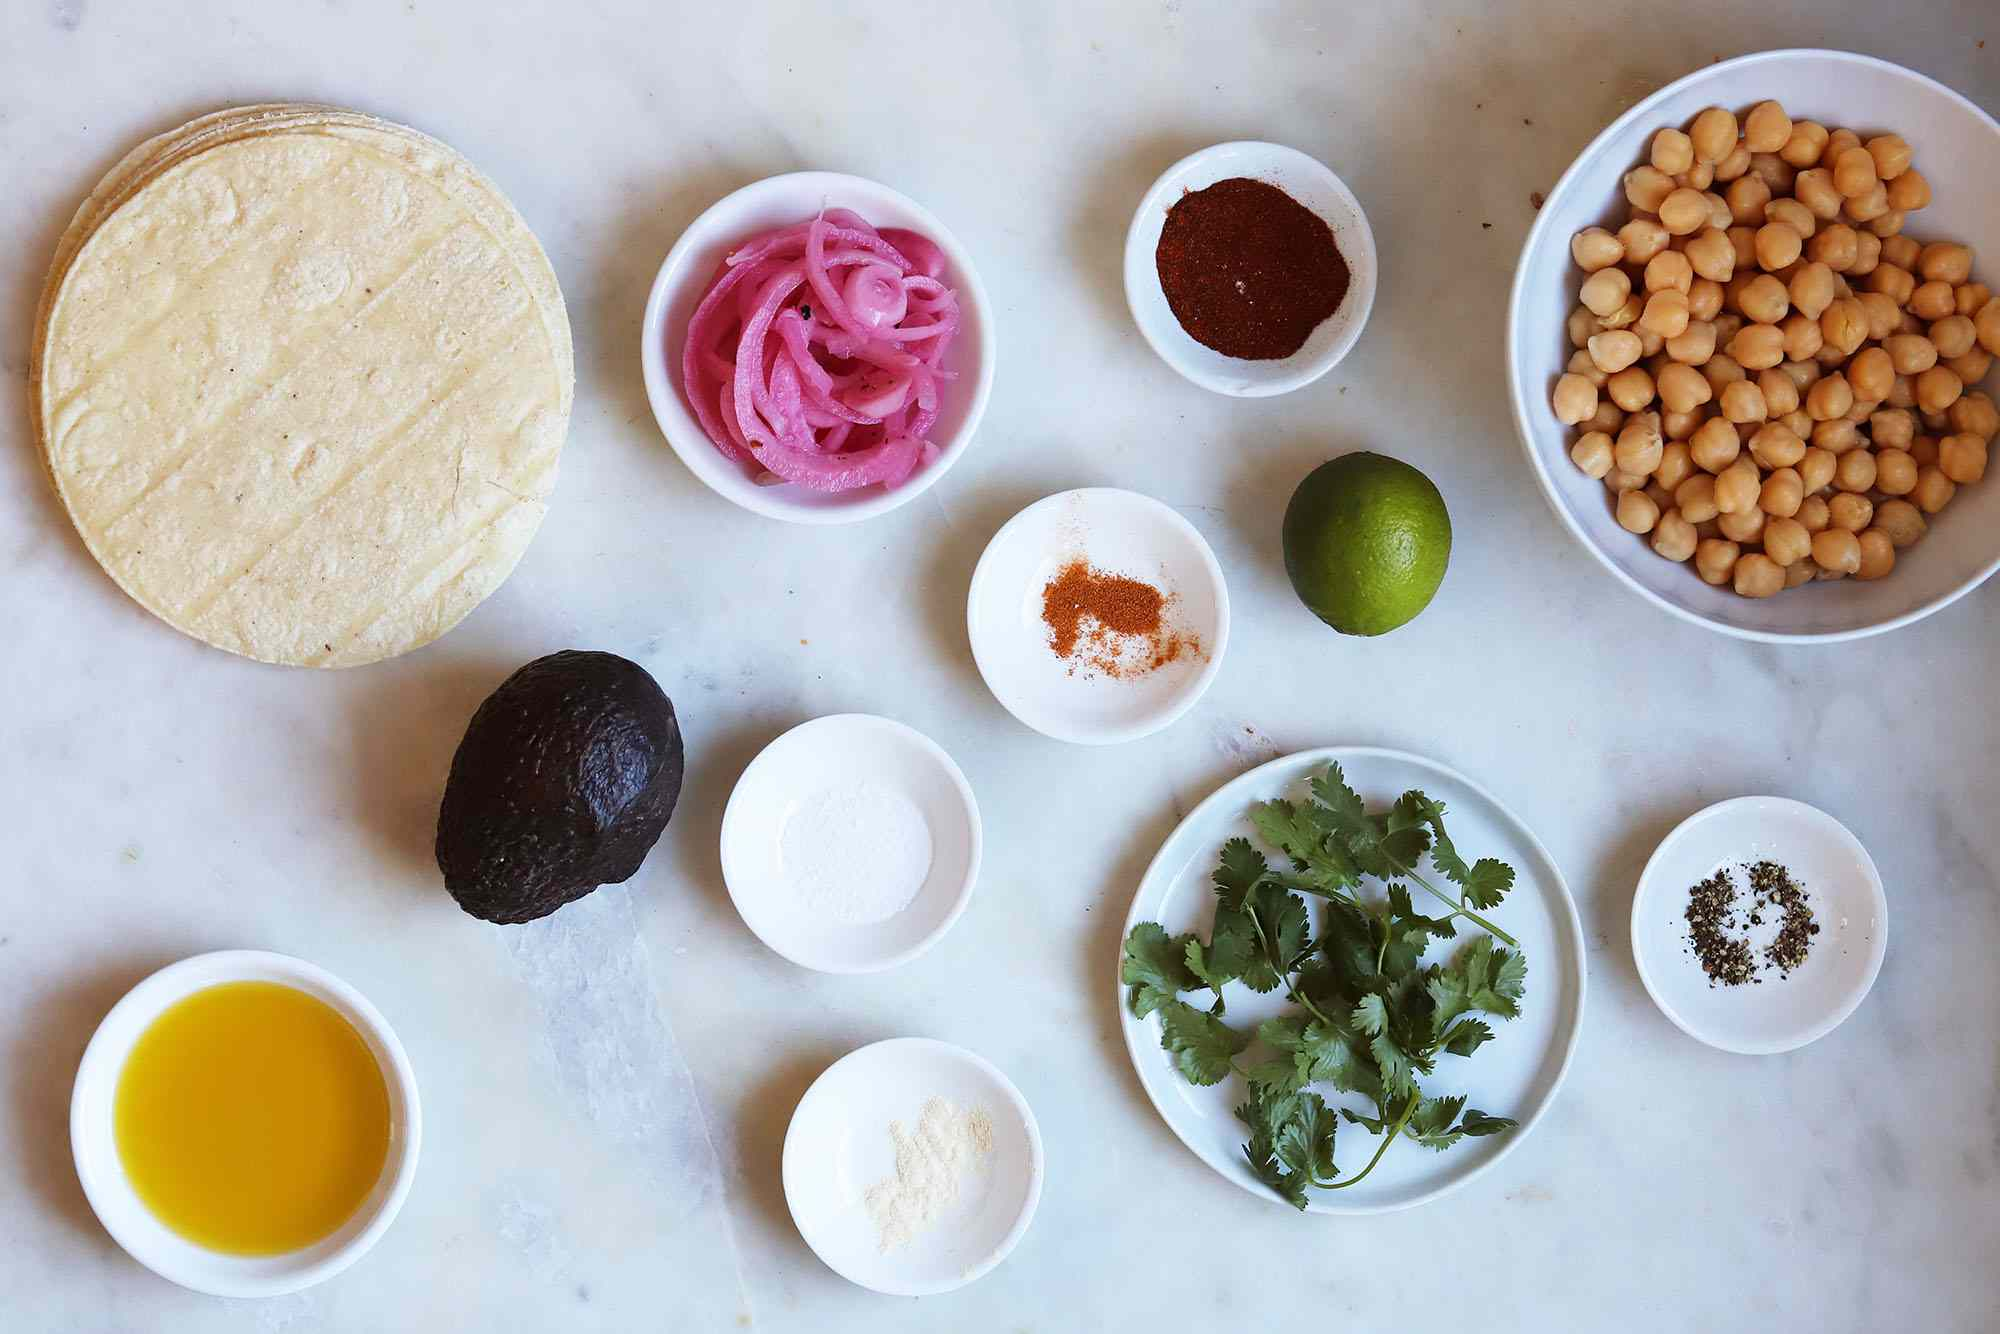 chickpea taco ingredients